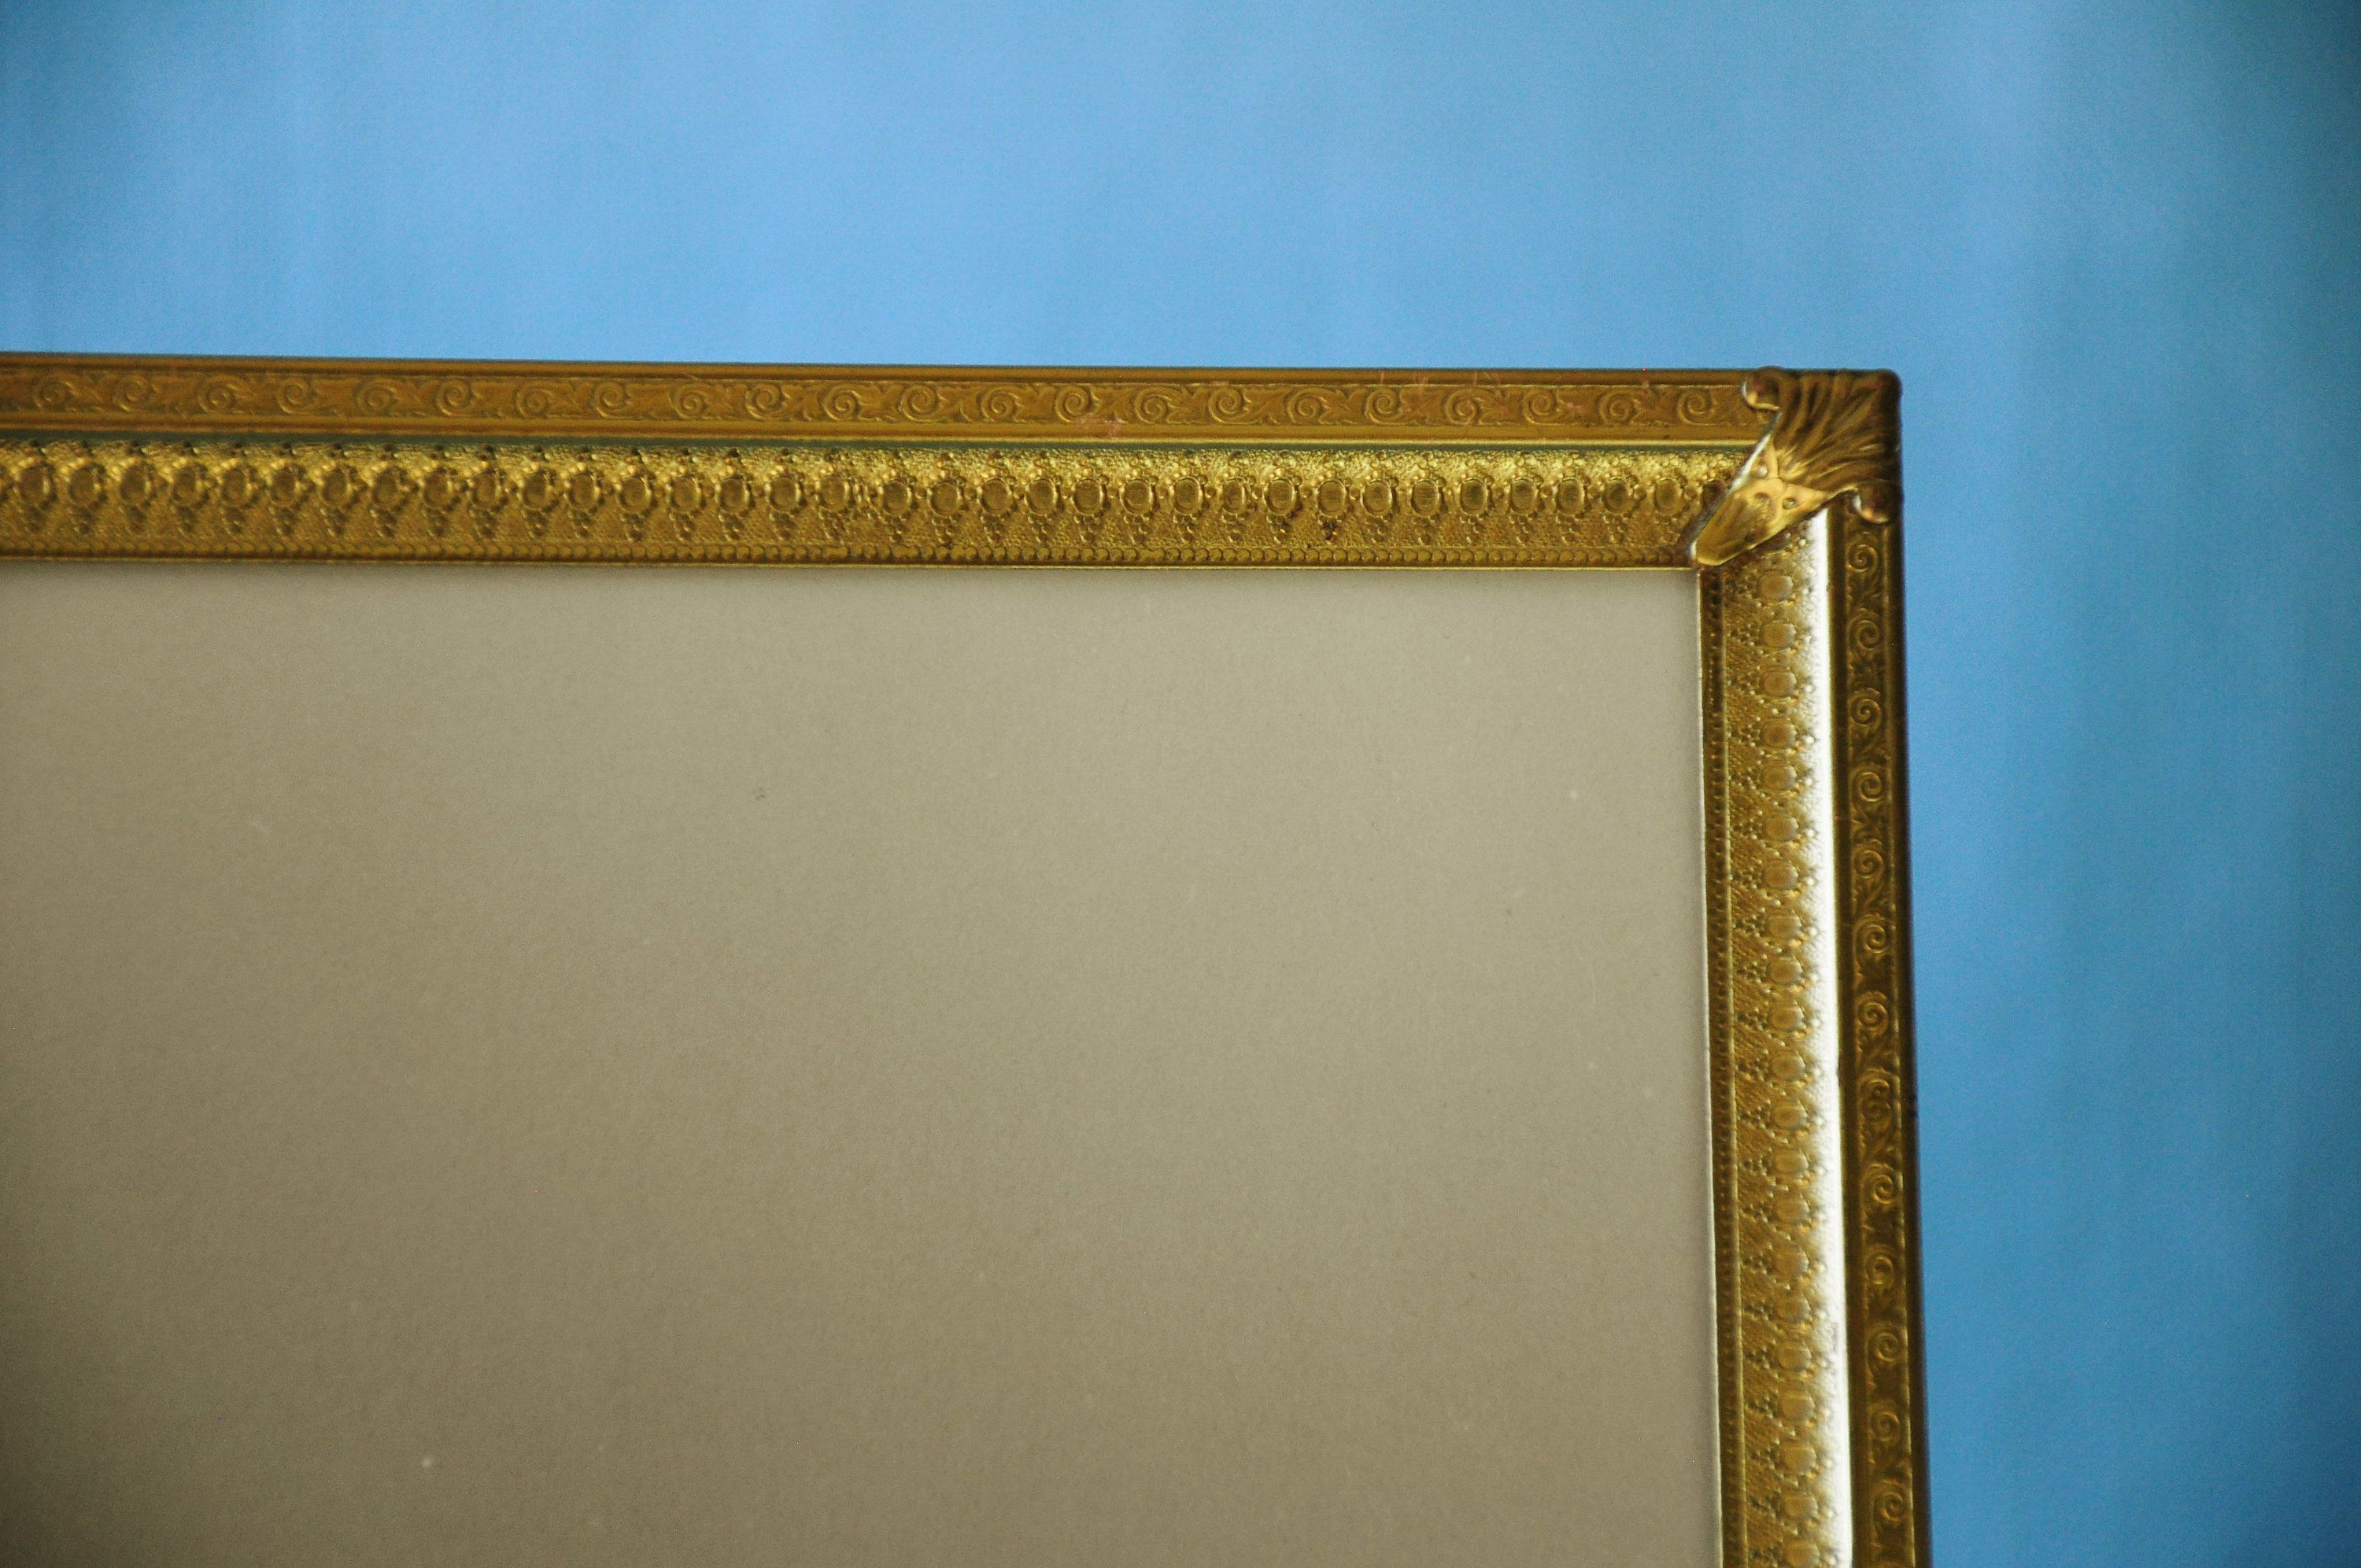 1940s Gilded 11x14 Picture Frame Vintage Gold Plated 11x14 Etsy In 2020 11x14 Picture Frame Engagement Frames Vintage Picture Frames